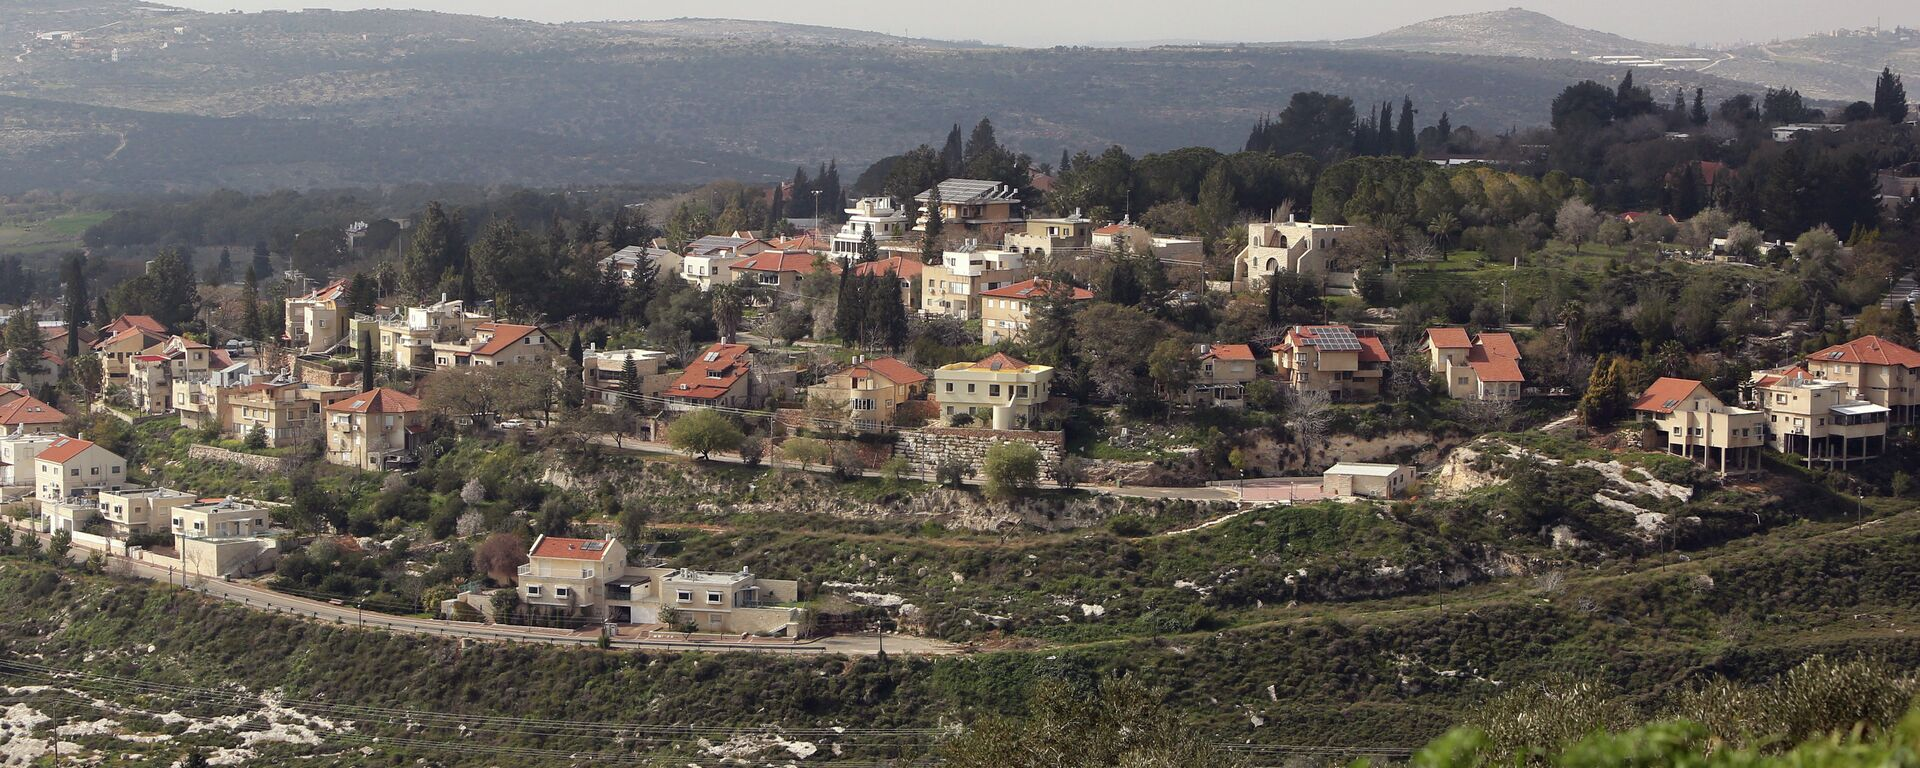 A picture shows a partial view of the Israeli settlement of Qadumim (Kedumim), near the Palestinian town of Nablus, in the Israeli-occupied West Bank, on February 9, 2015 - Sputnik Mundo, 1920, 11.04.2019